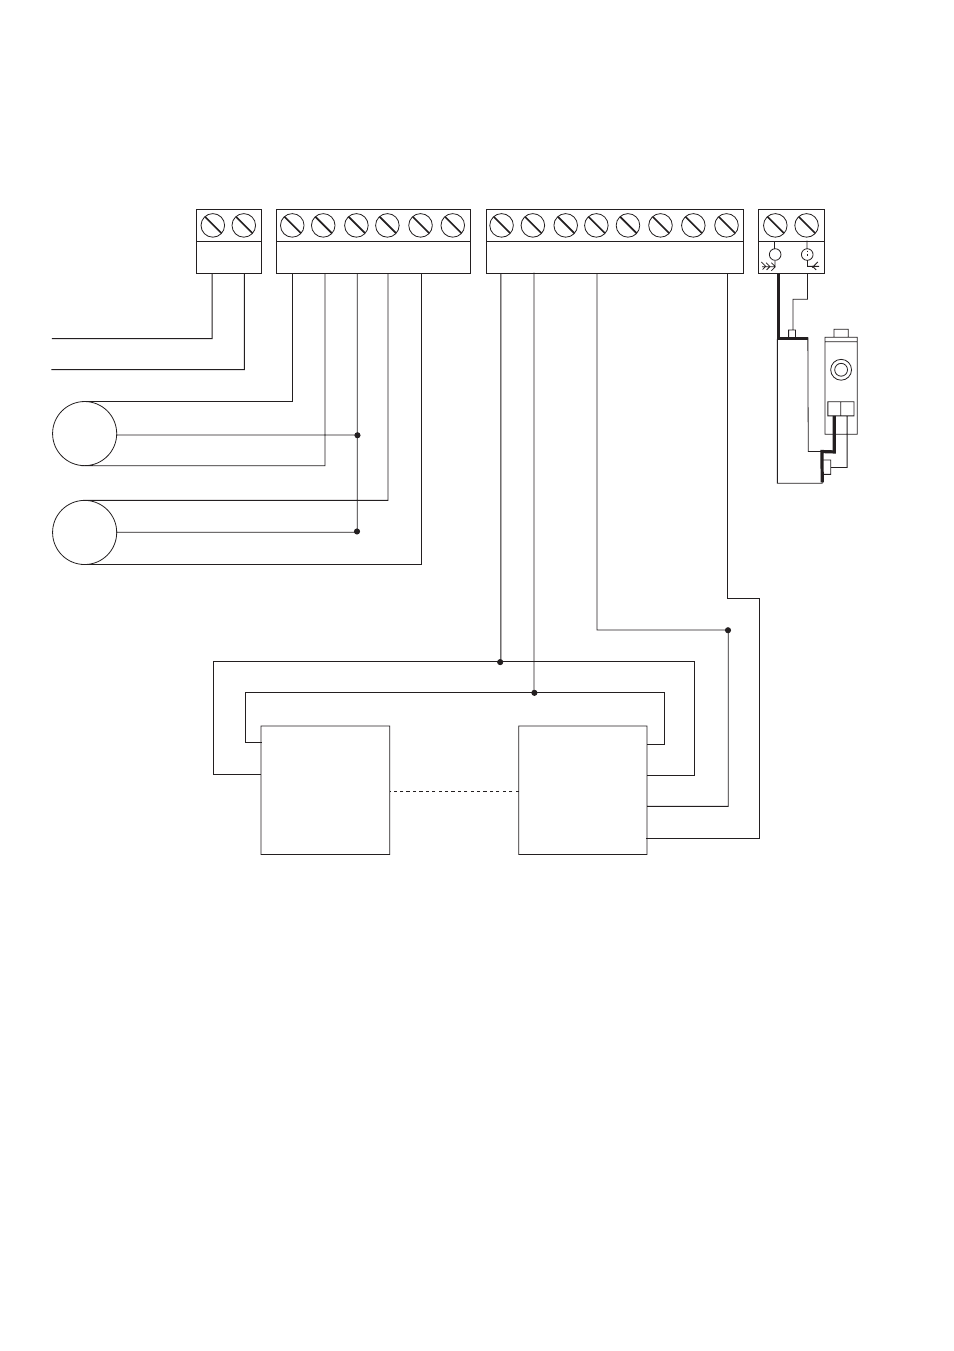 hight resolution of wiring diagram that came with kit wiring diagram blog wiring diagram that came with kit